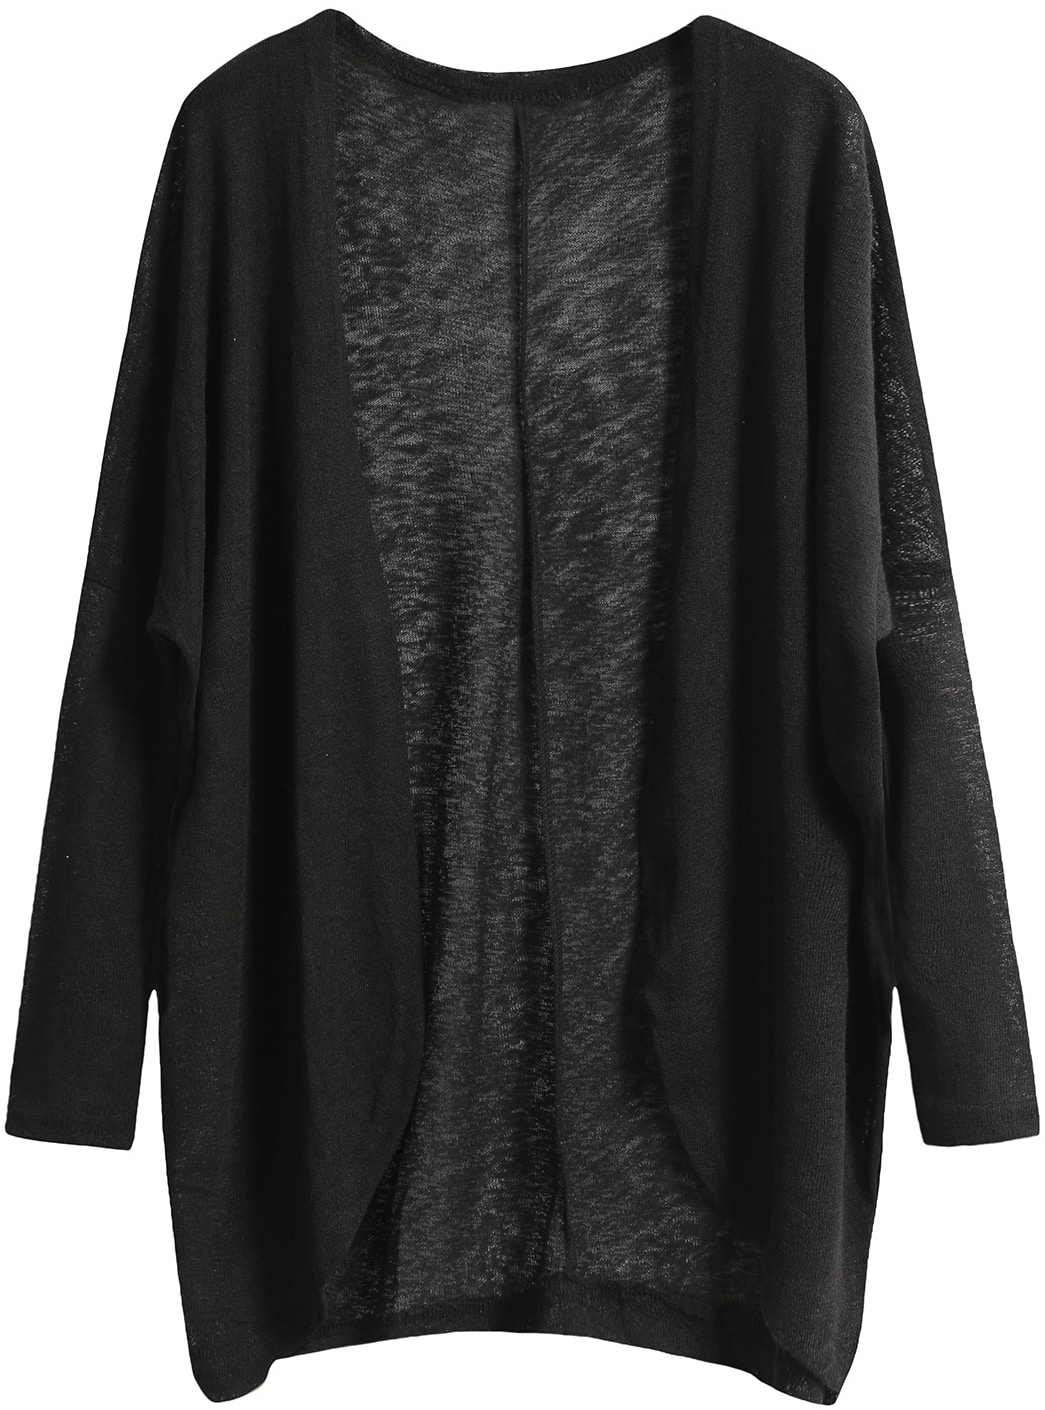 Shop for long black cardigan online at Target. Free shipping on purchases over $35 and save 5% every day with your Target REDcard.